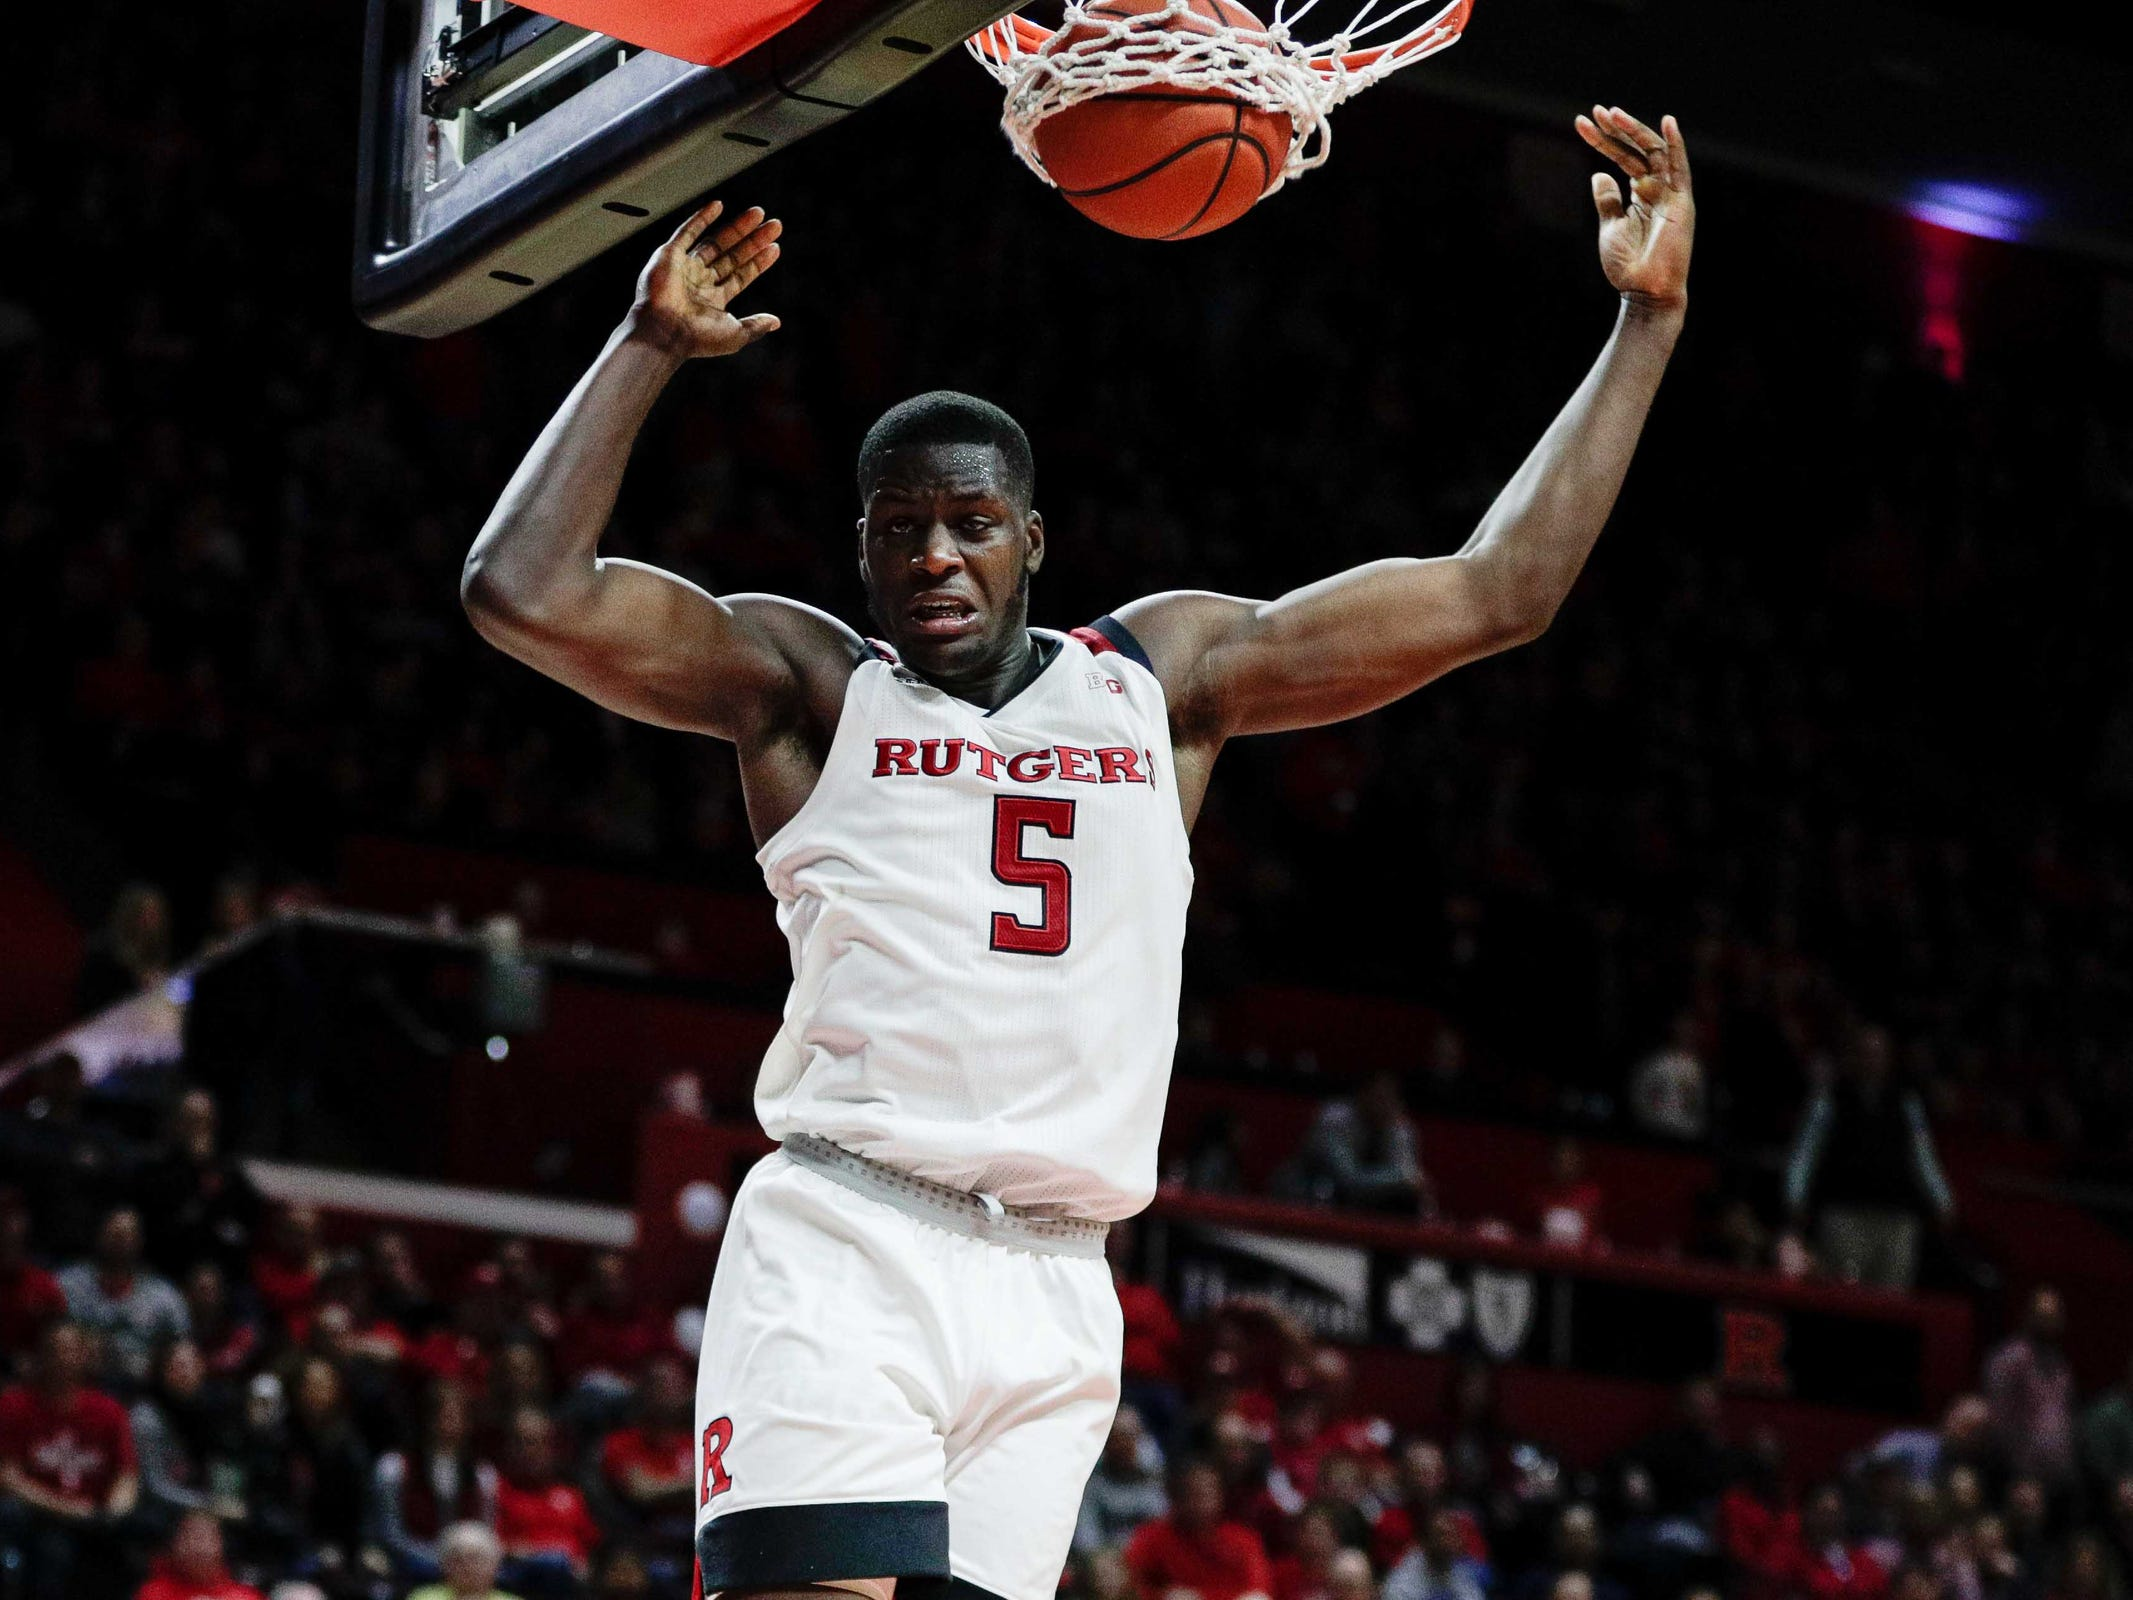 No. 13: Rutgers Scarlet Knights (5-4, 0-2). Junior forward Eugene Omoruyi is collecting 15.8 points and 9.2 rebounds.